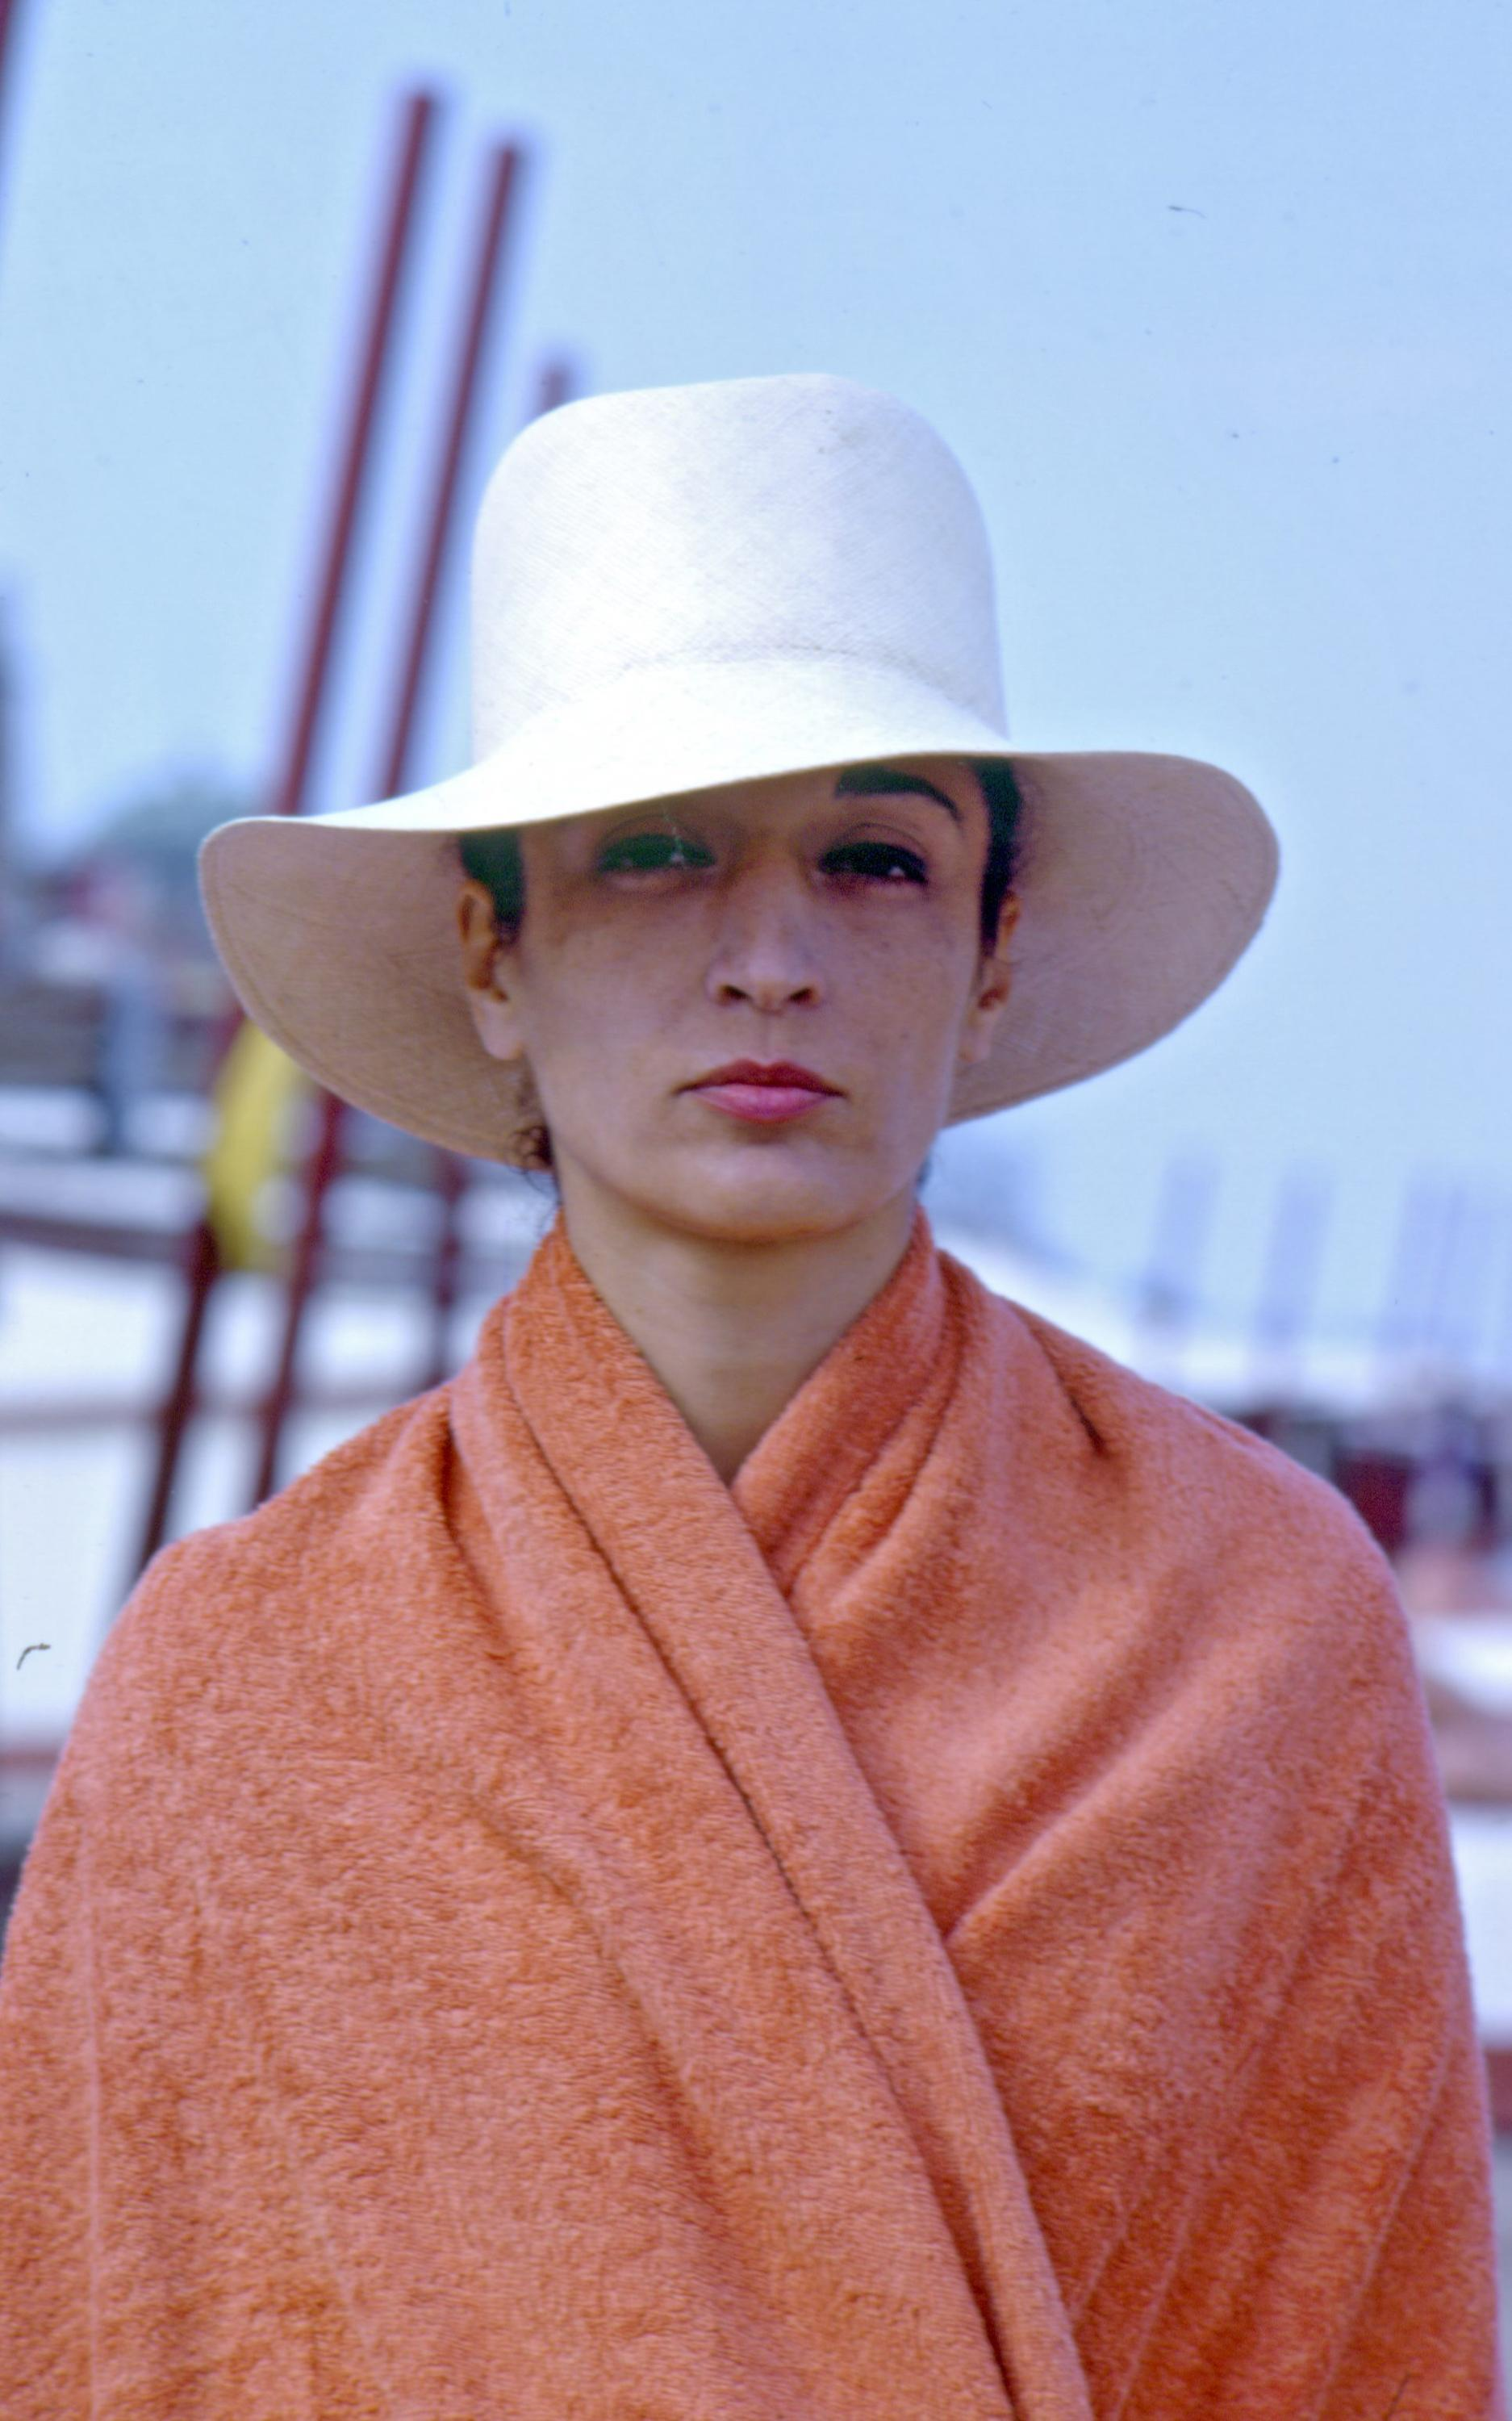 A portrait shows a light-skinned person wearing a large, wide-brimmed white hat and an orange shawl or blanket.